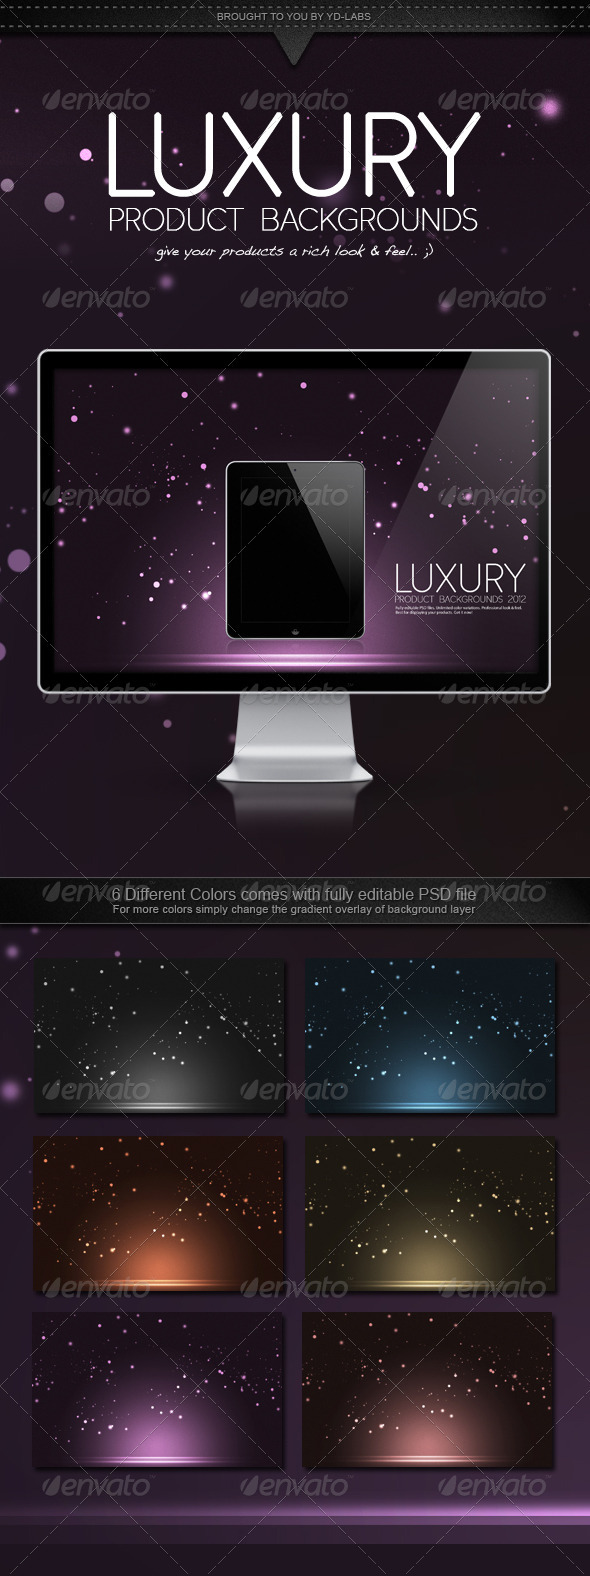 Luxury Product Backgrounds - Abstract Backgrounds